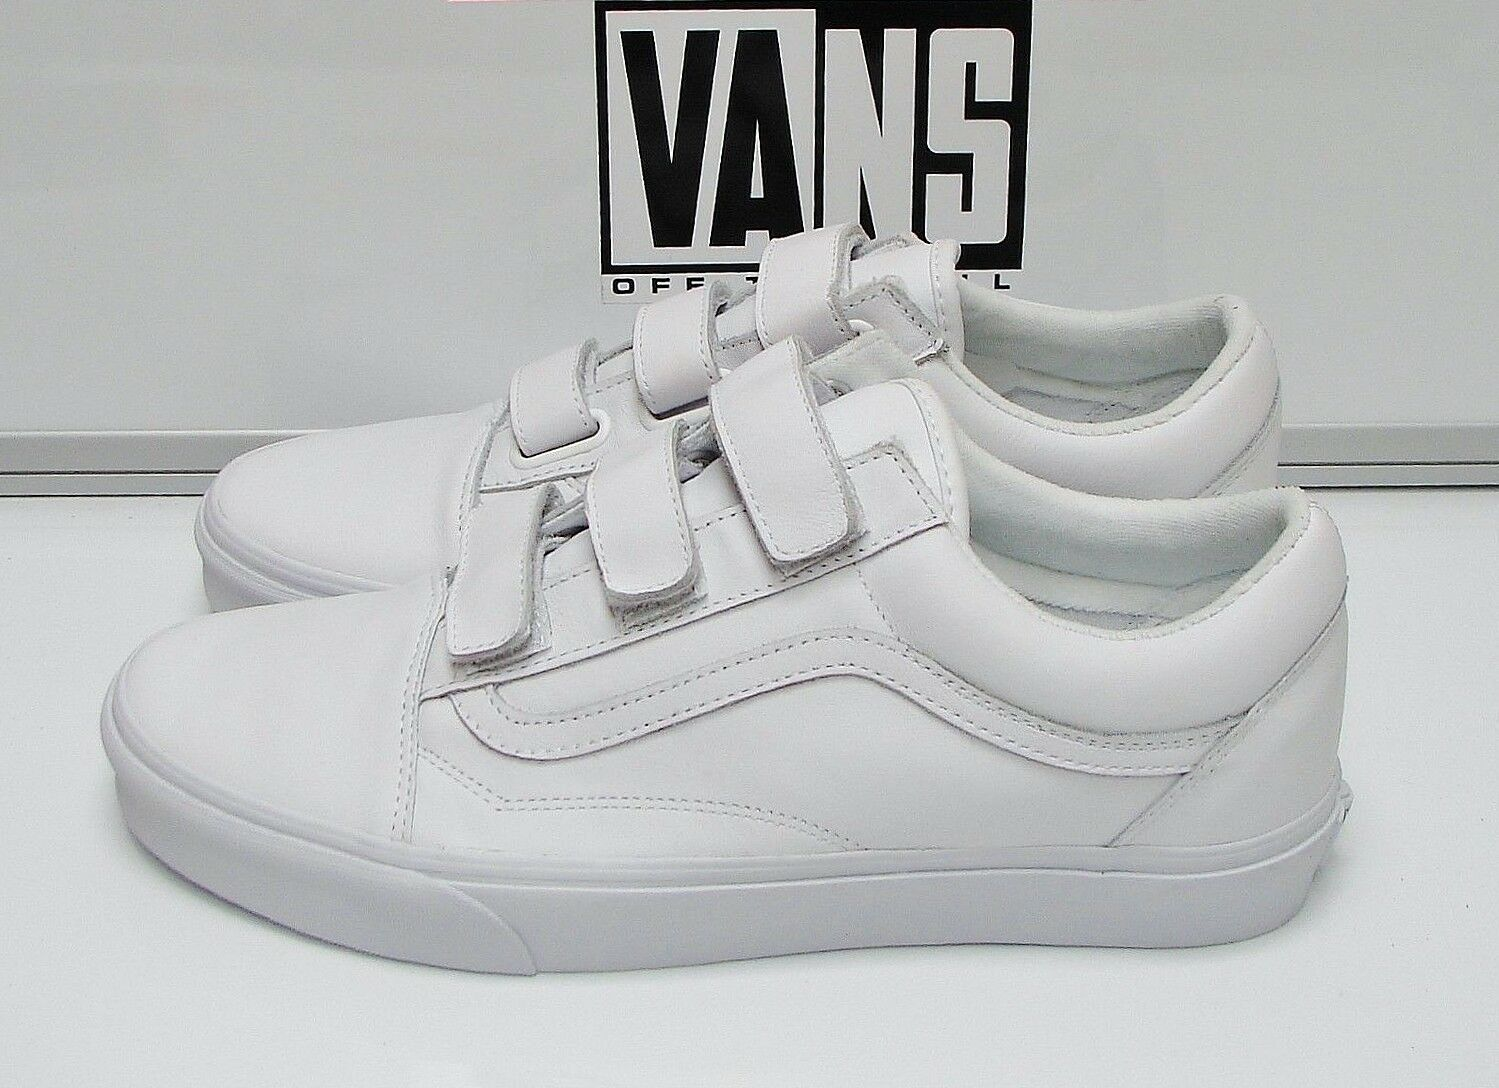 Vans Vans Vans Old Skool V Mono Leather True White VN0A3D29OP0 Men's Size  11.5 bcb364